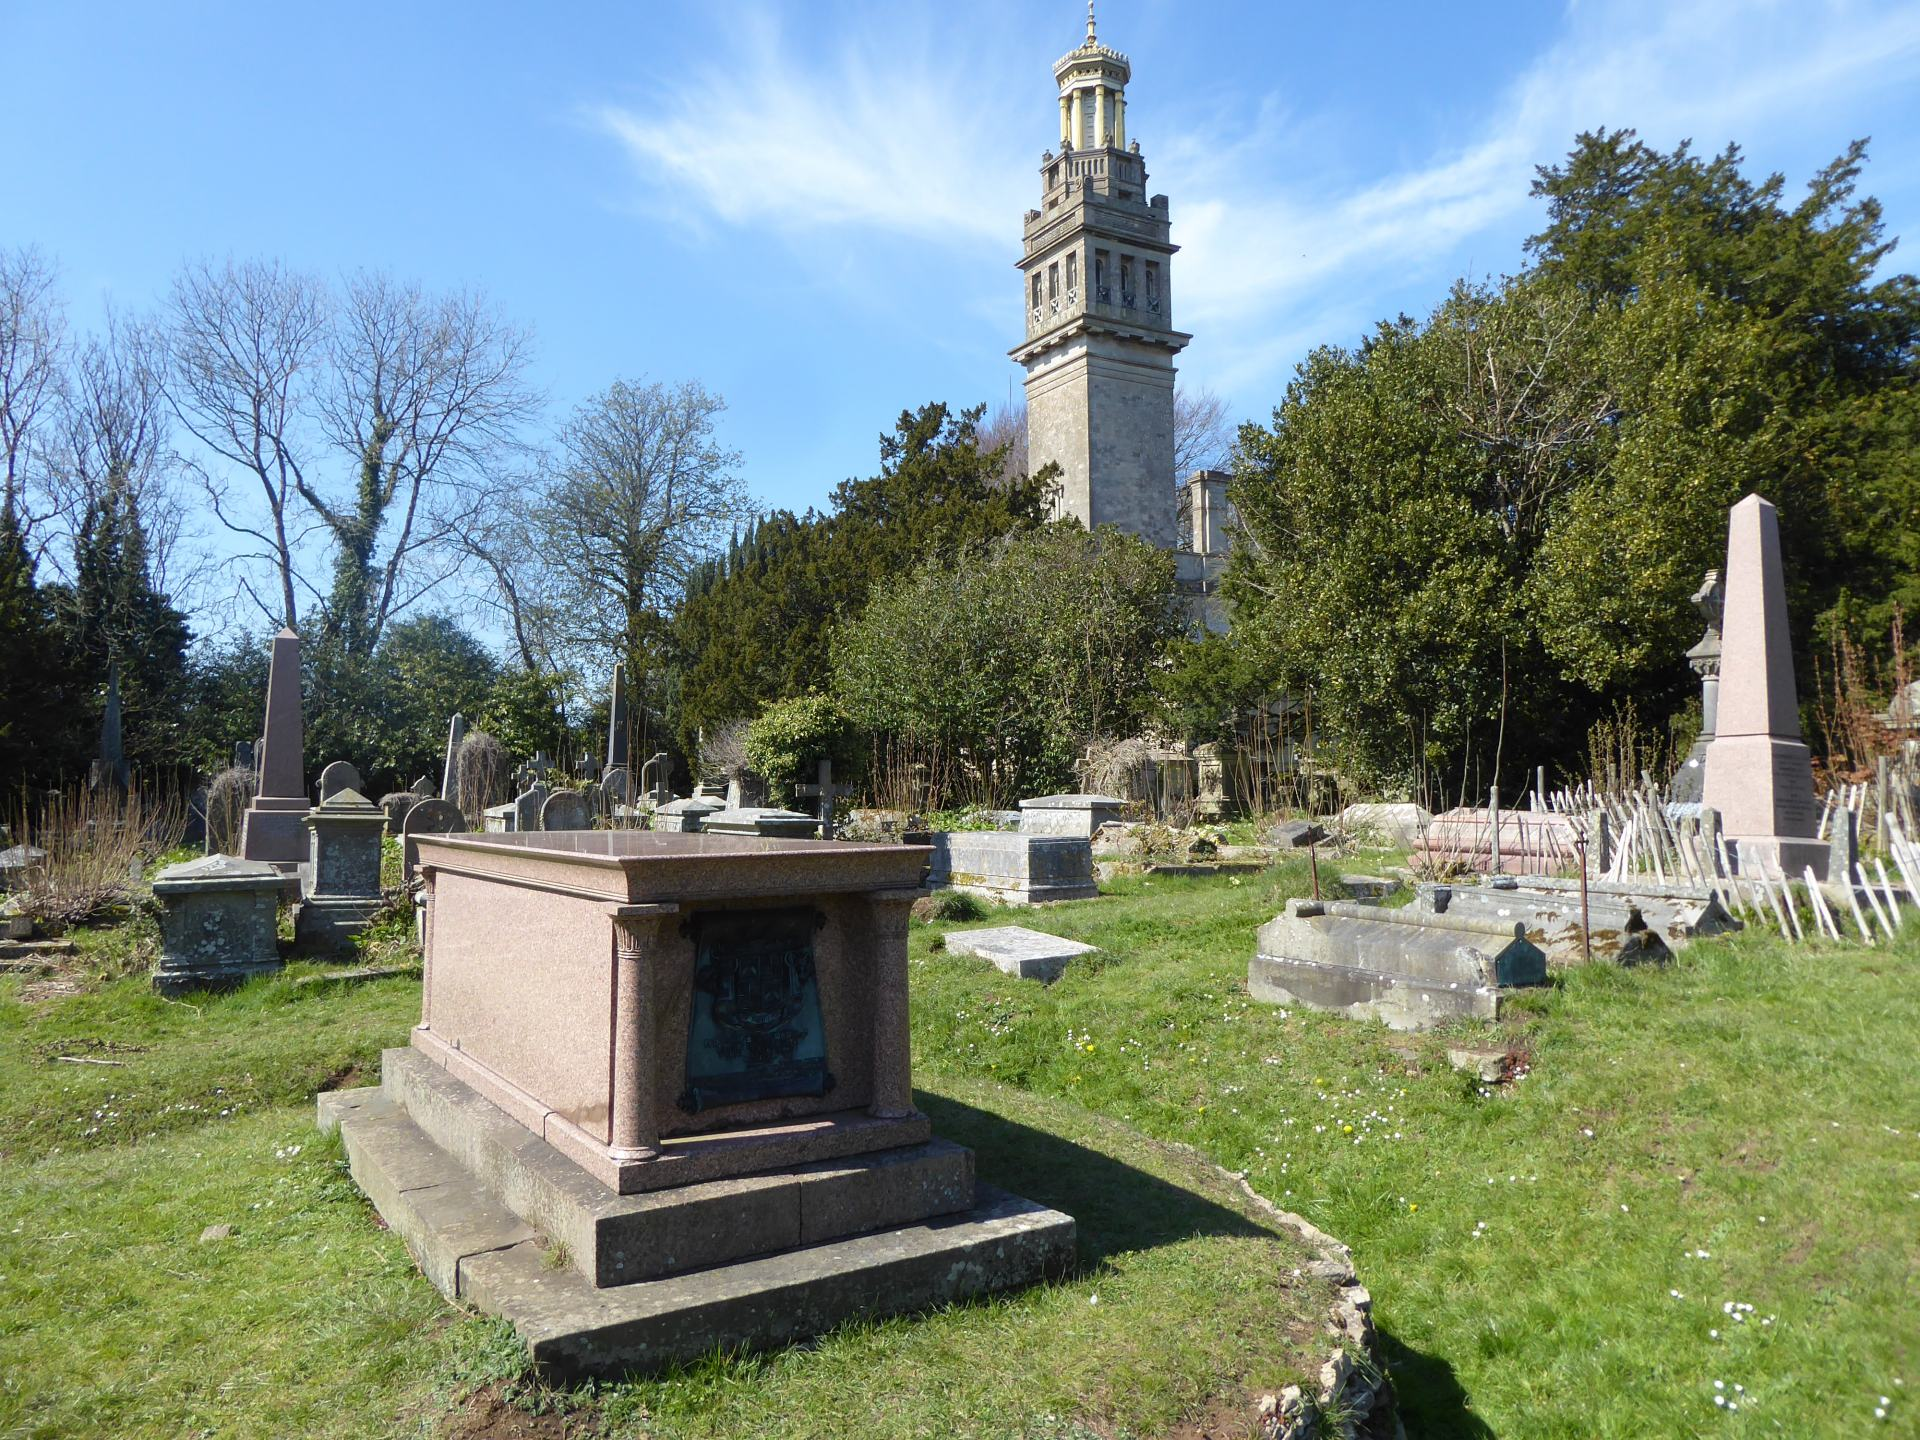 A view of a graveyard, with William Beckford's tomb in the foreground. Beckords Tower is in the background, rising above a cluster of tree's.